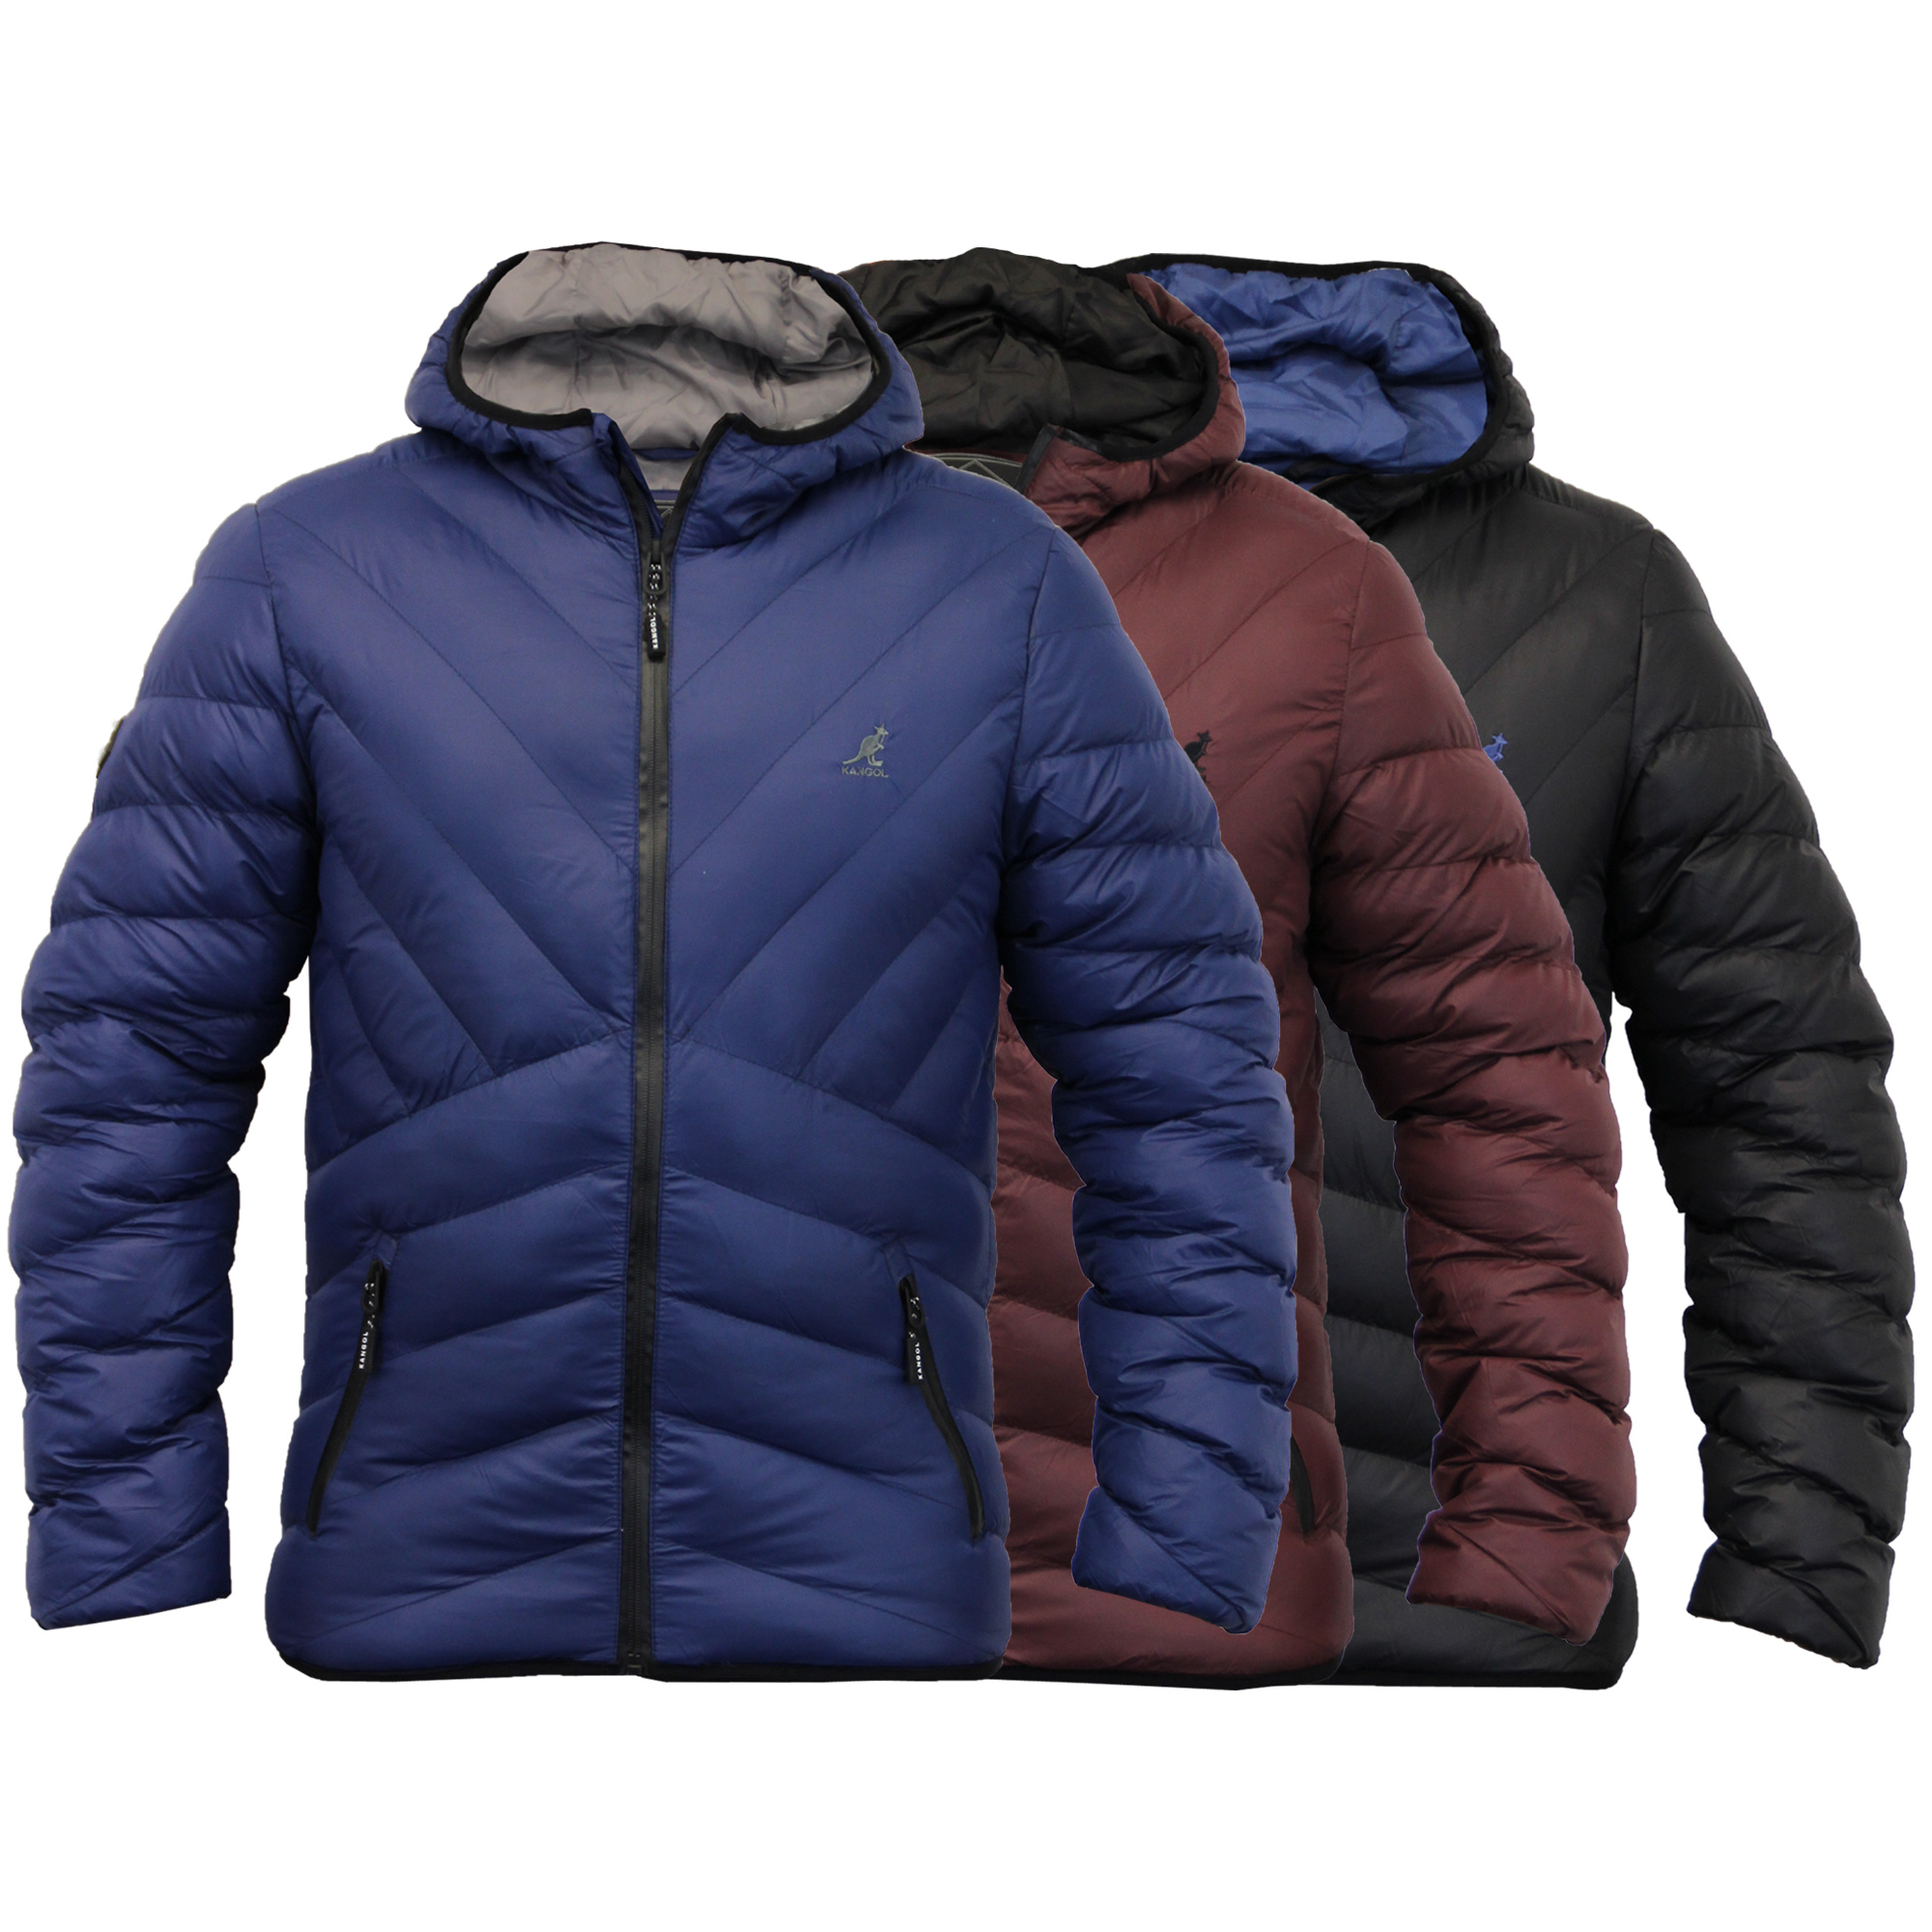 Mens Jacket Kangol Coat Padded Quilted Hooded Puffer Bubble Winter ...